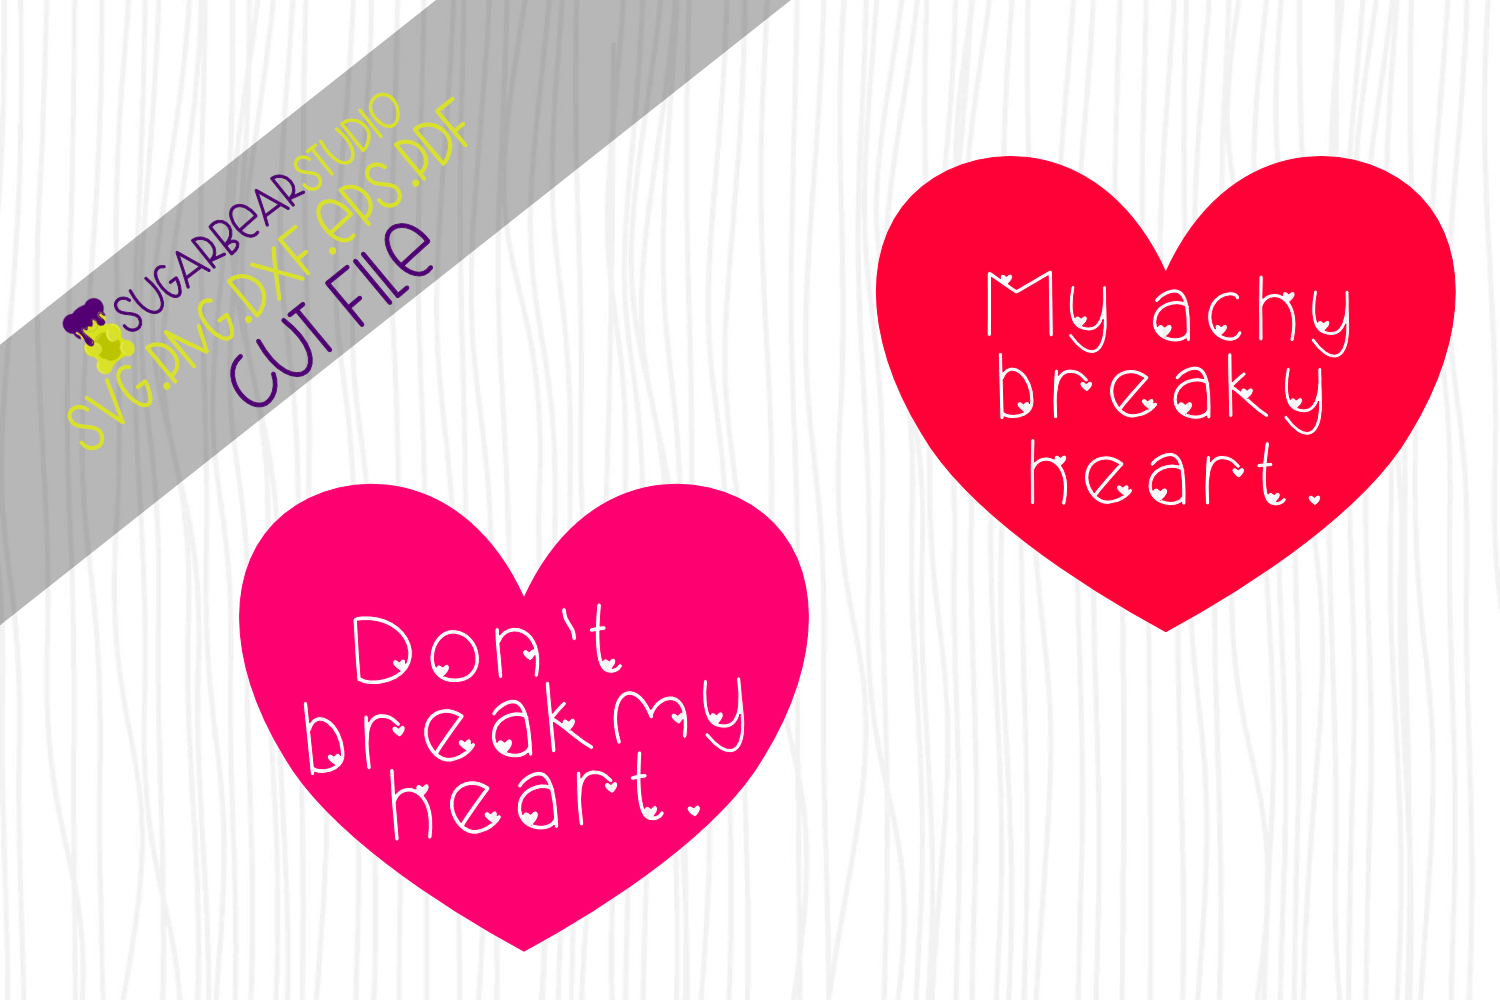 Download Free Achy Breaky Heart Svg Graphic By Sugarbearstudio Creative Fabrica for Cricut Explore, Silhouette and other cutting machines.